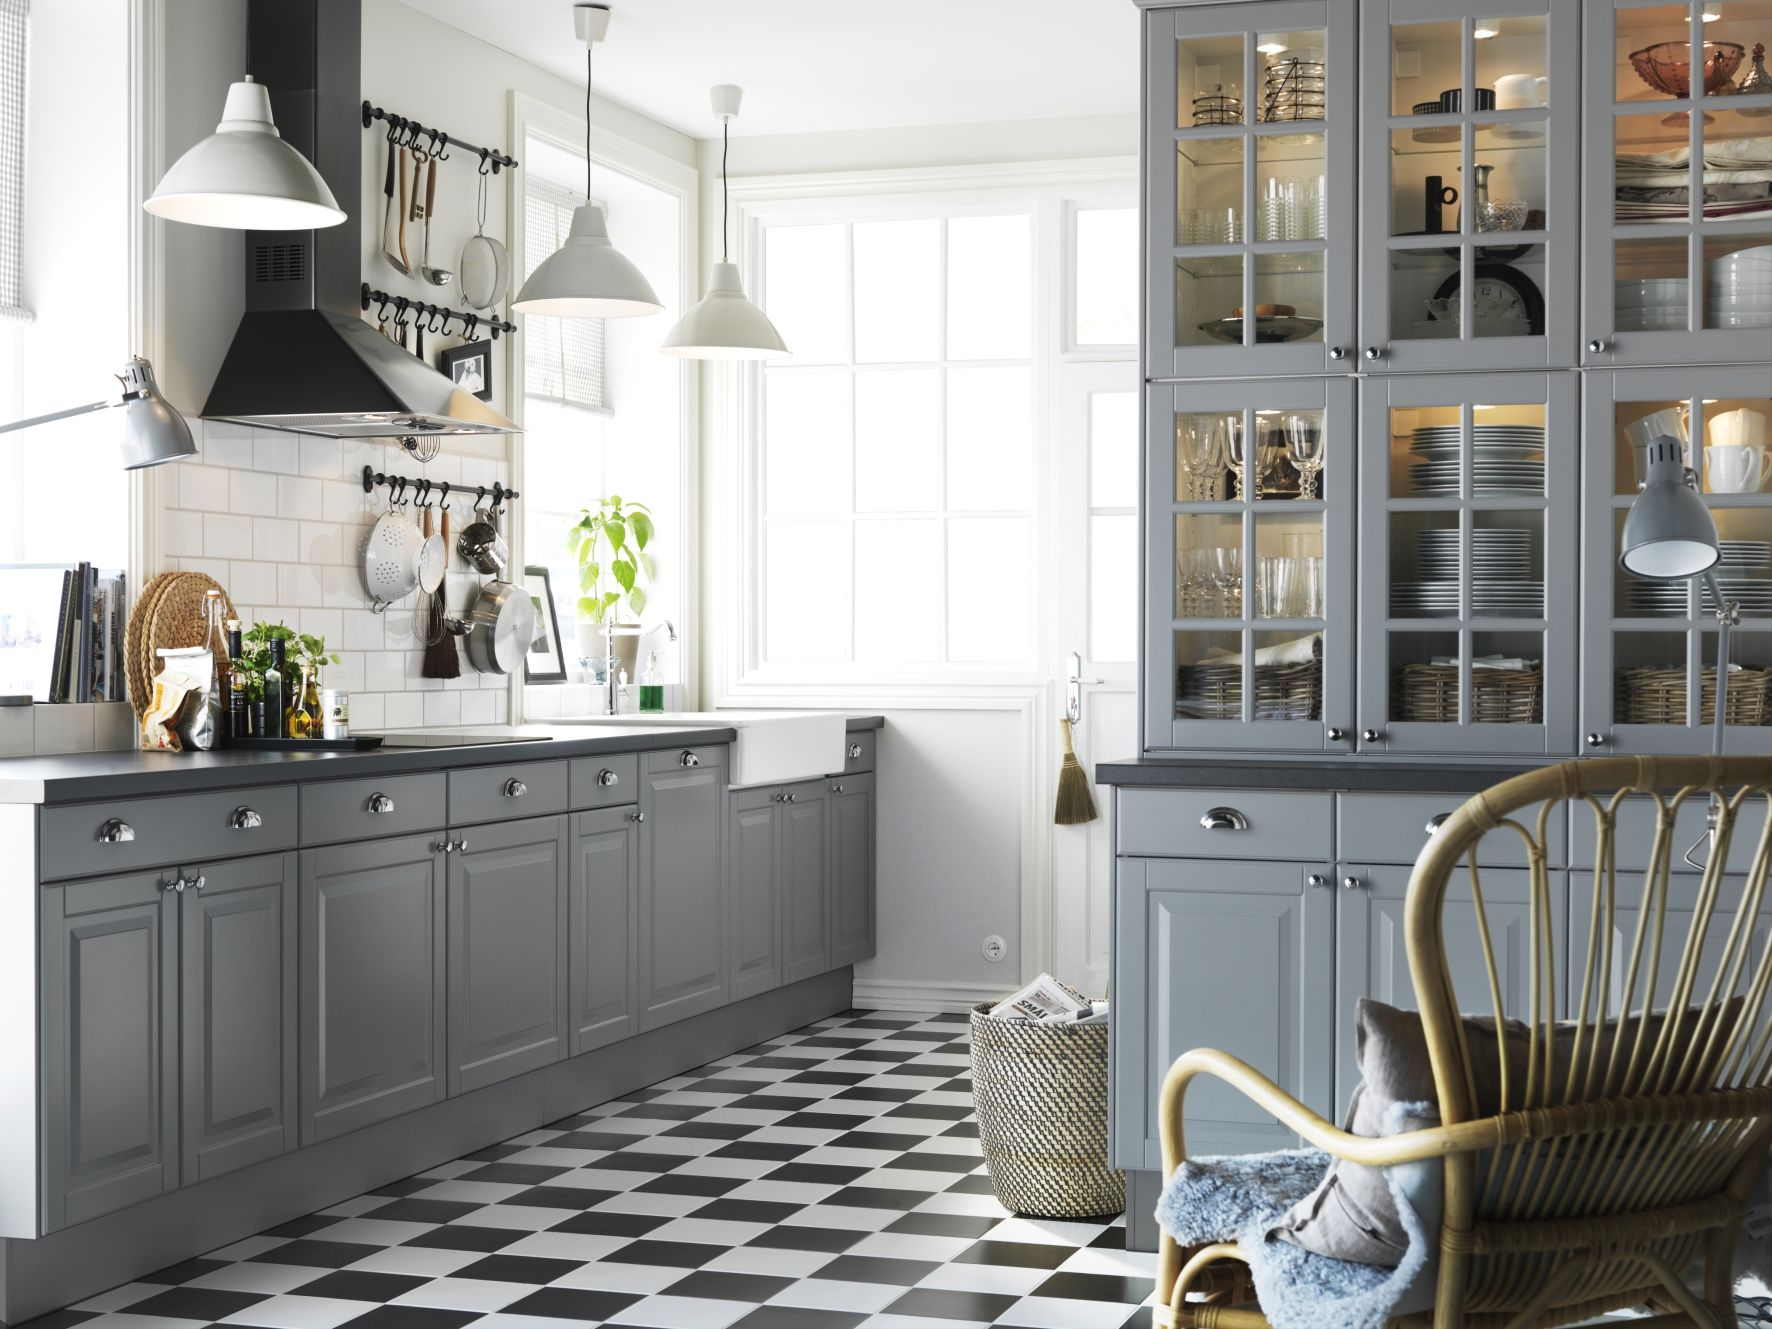 Best Kitchen Gallery: 25 Kitchen Design Inspiration Ideas Checkerboard Floor Gray of Gray Kitchen Cabinet Doors on rachelxblog.com